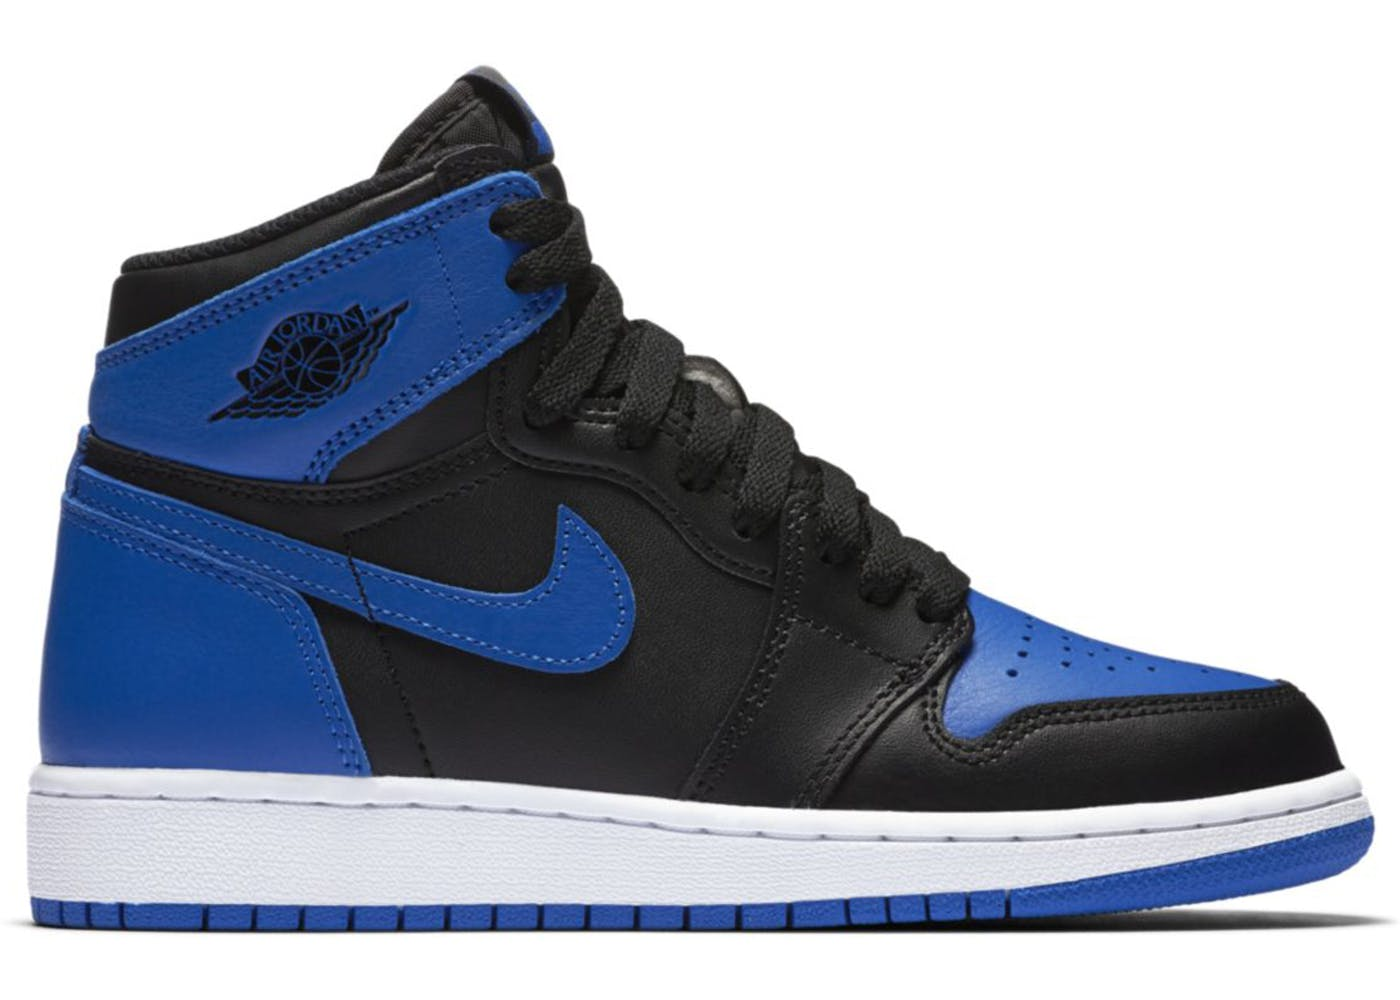 Find great deals on eBay for jordan retro 1 black blue. Shop with confidence.